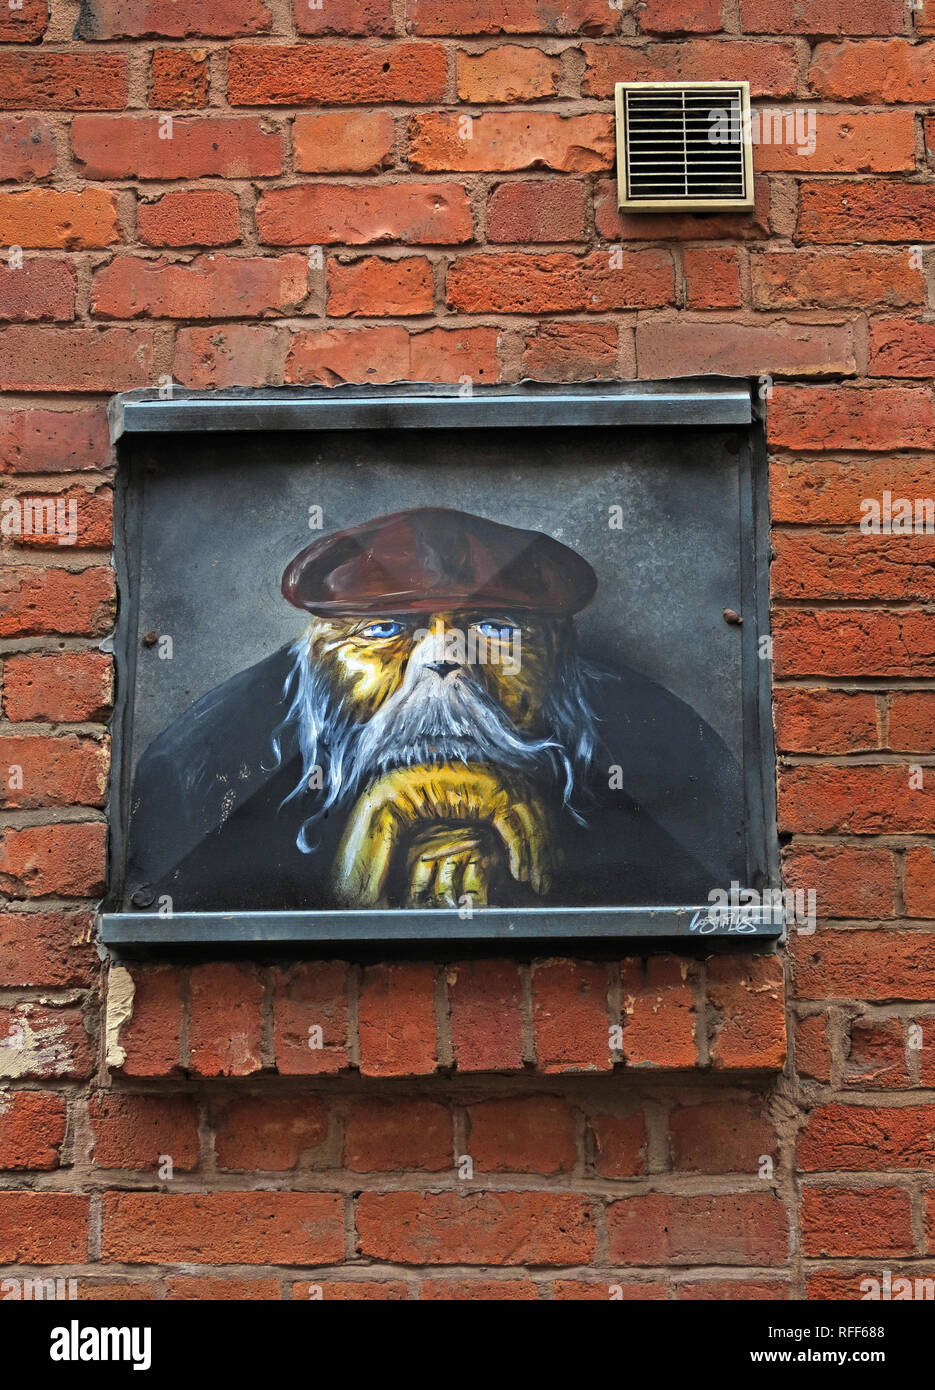 Dog man, dogface in cloth cap, Houldsworth Street, Northern Quarter, Manchester, England, UK - Stock Image